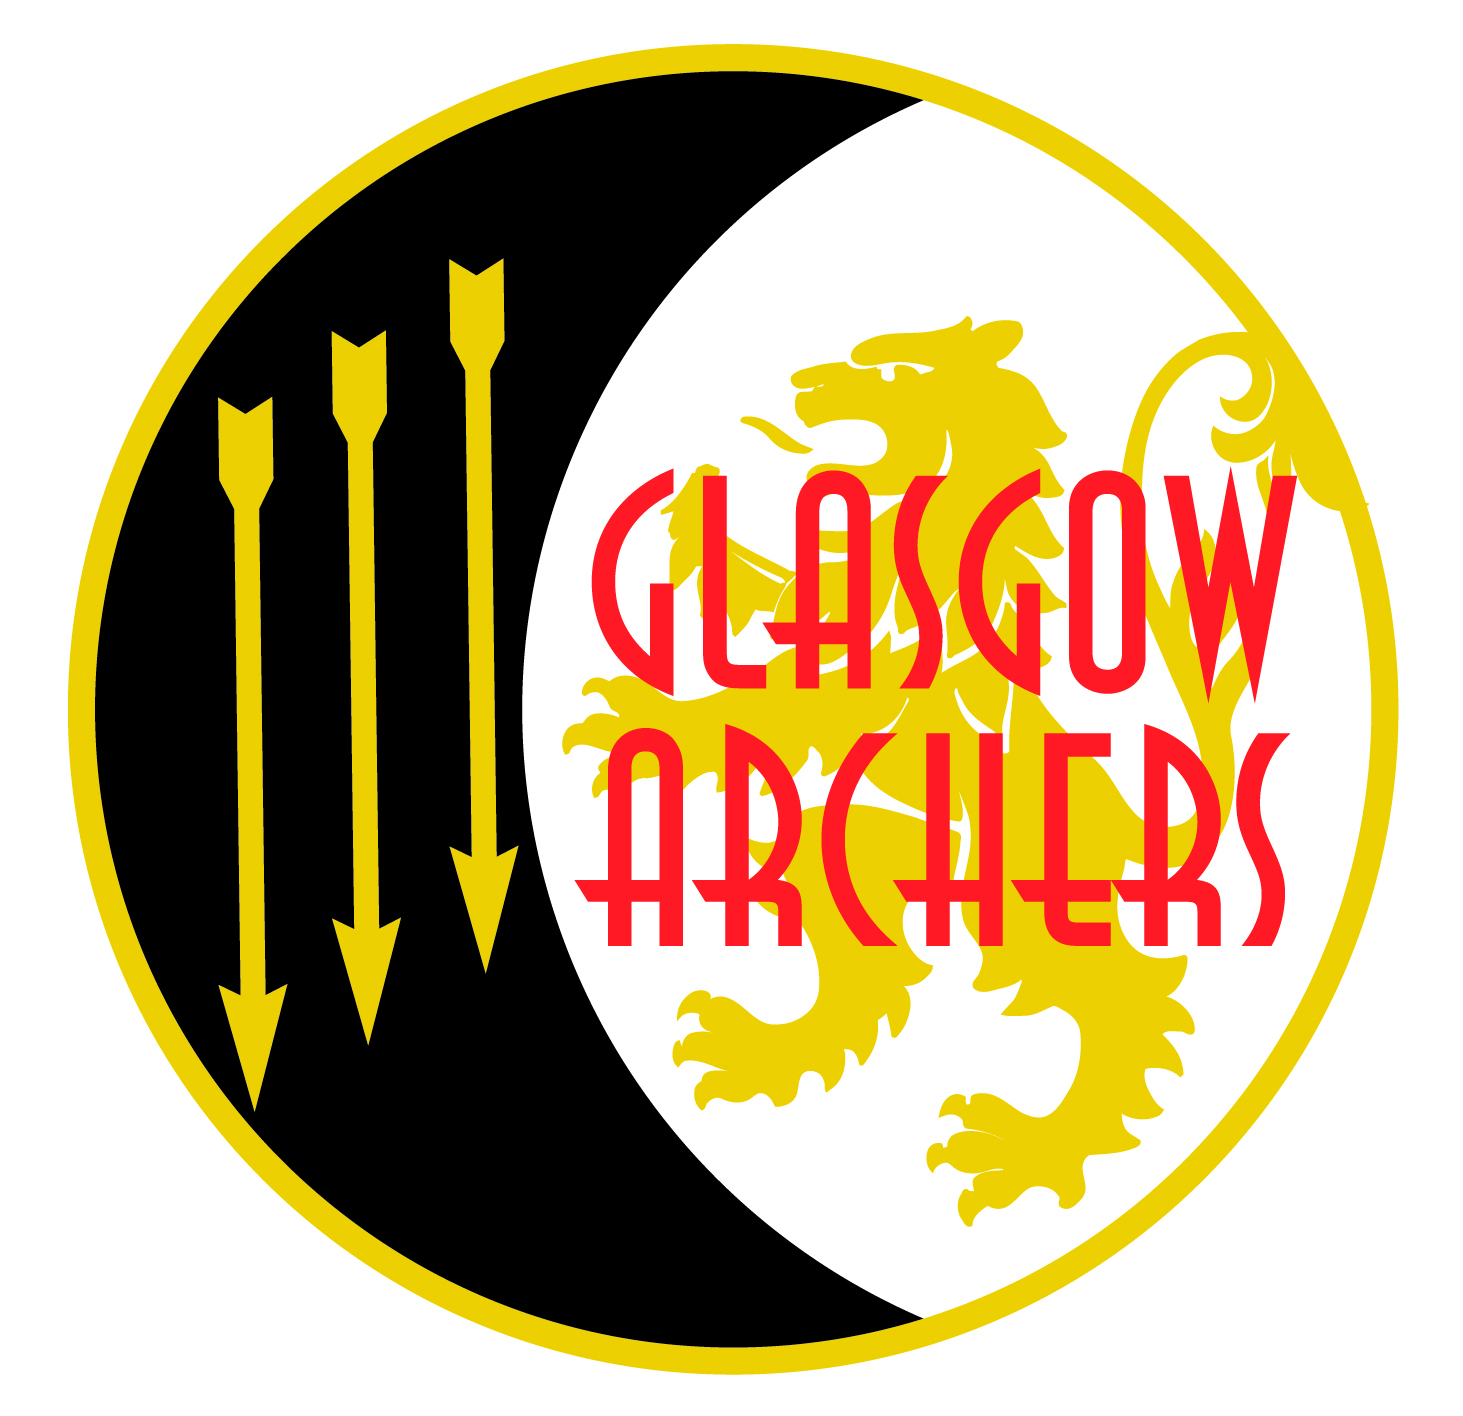 Glasgow Archers Logo